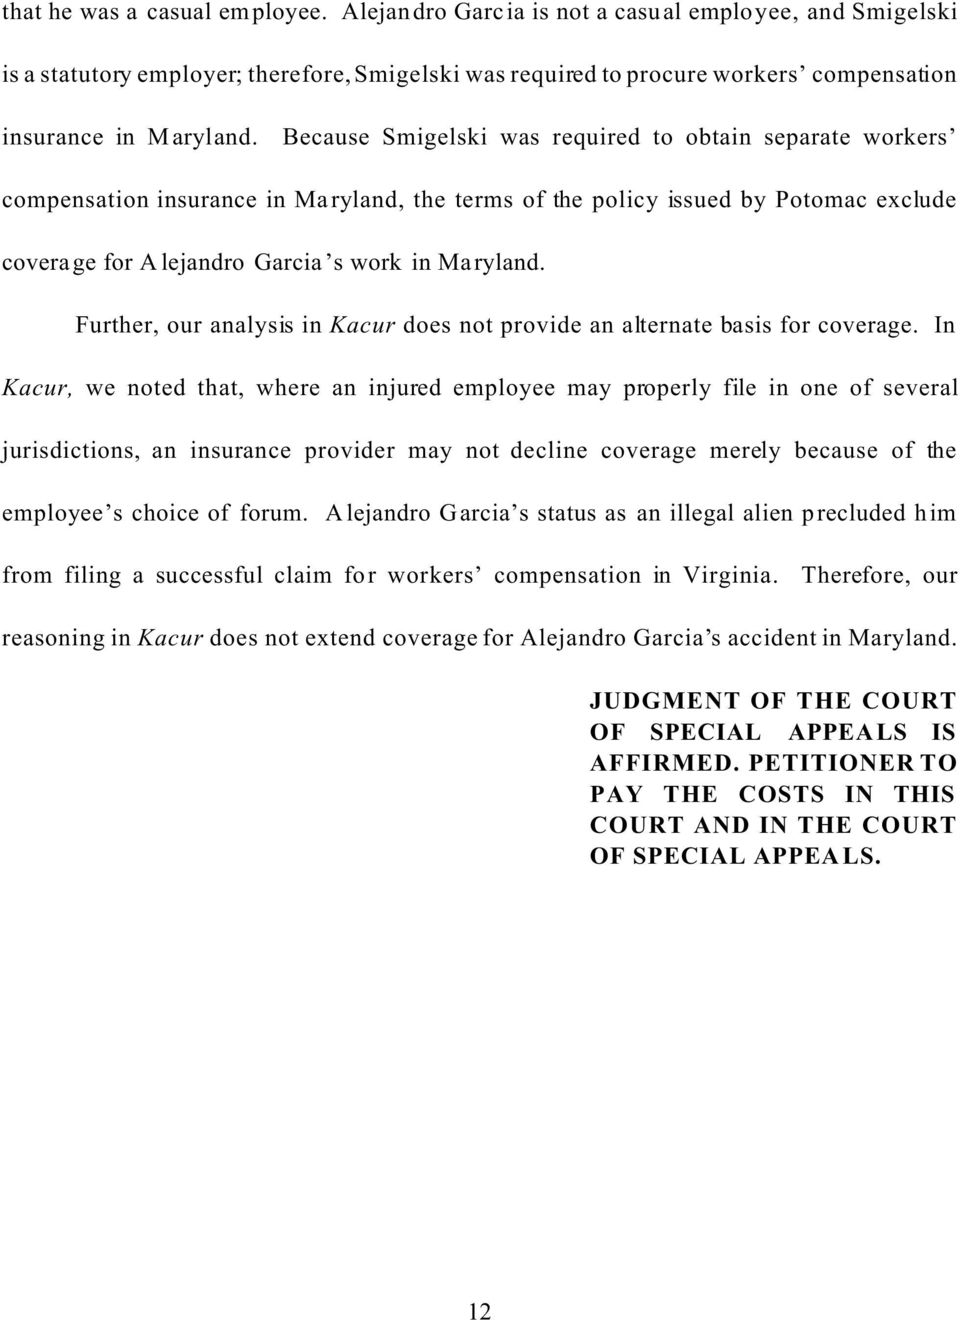 Because Smigelski was required to obtain separate workers compensation insurance in Maryland, the terms of the policy issued by Potomac exclude coverage for Alejandro Garcia s work in Maryland.